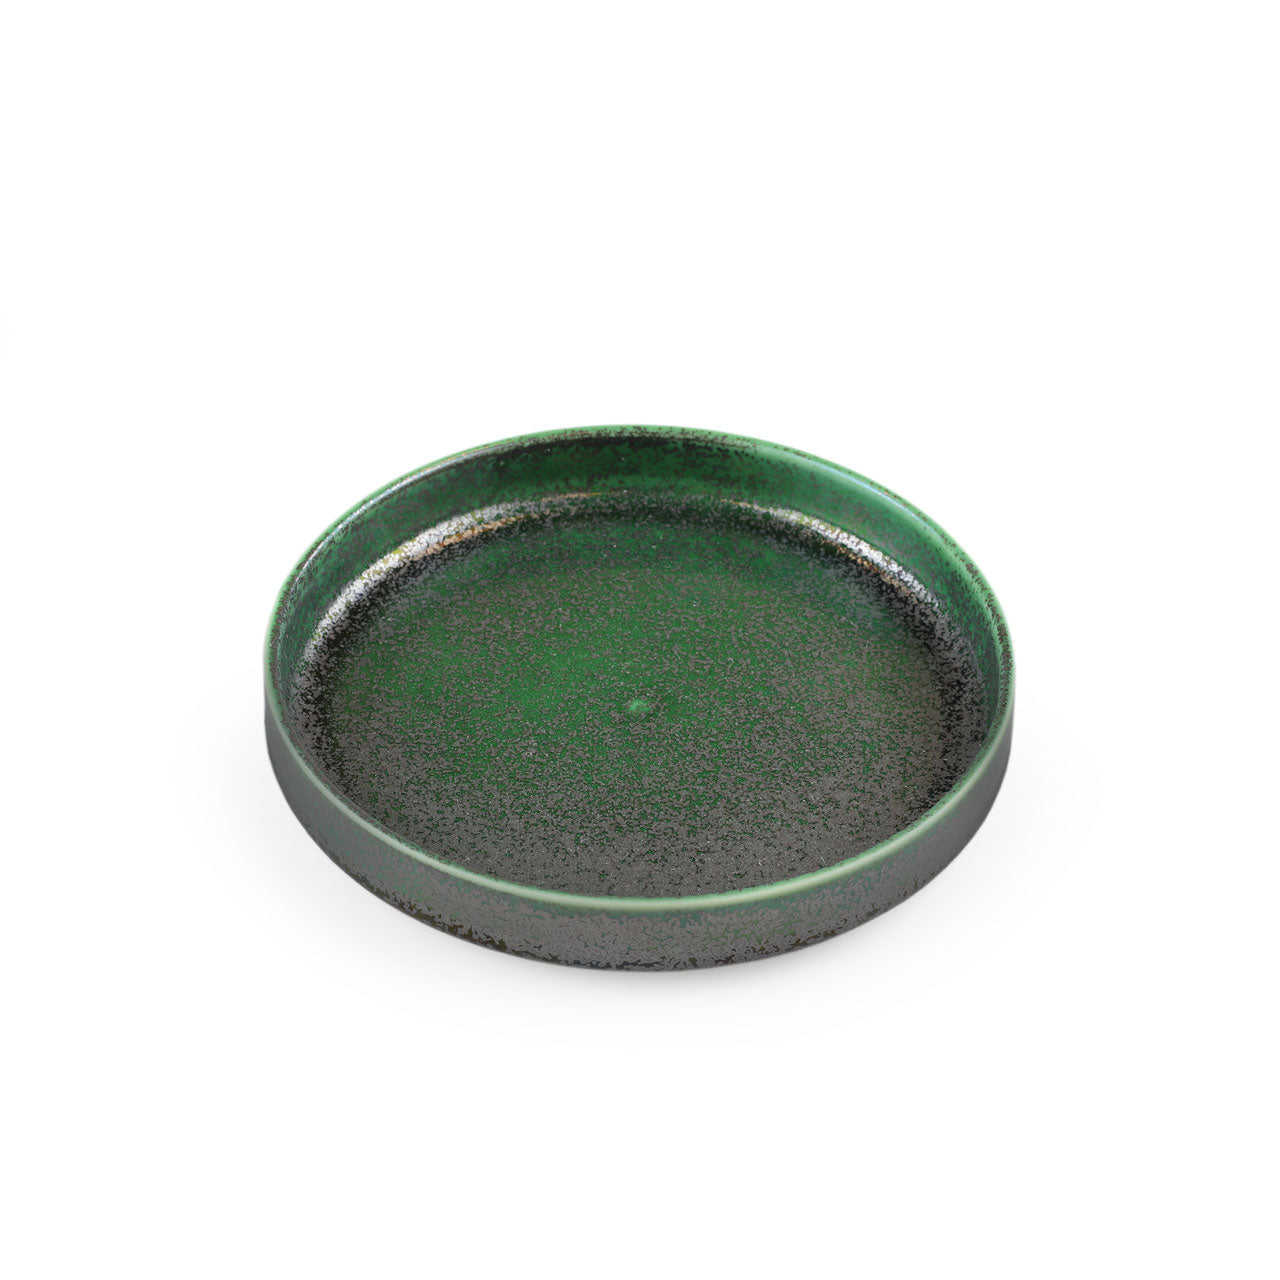 "Ivy Green Stackable Appetizer Plate 6.3"" dia"